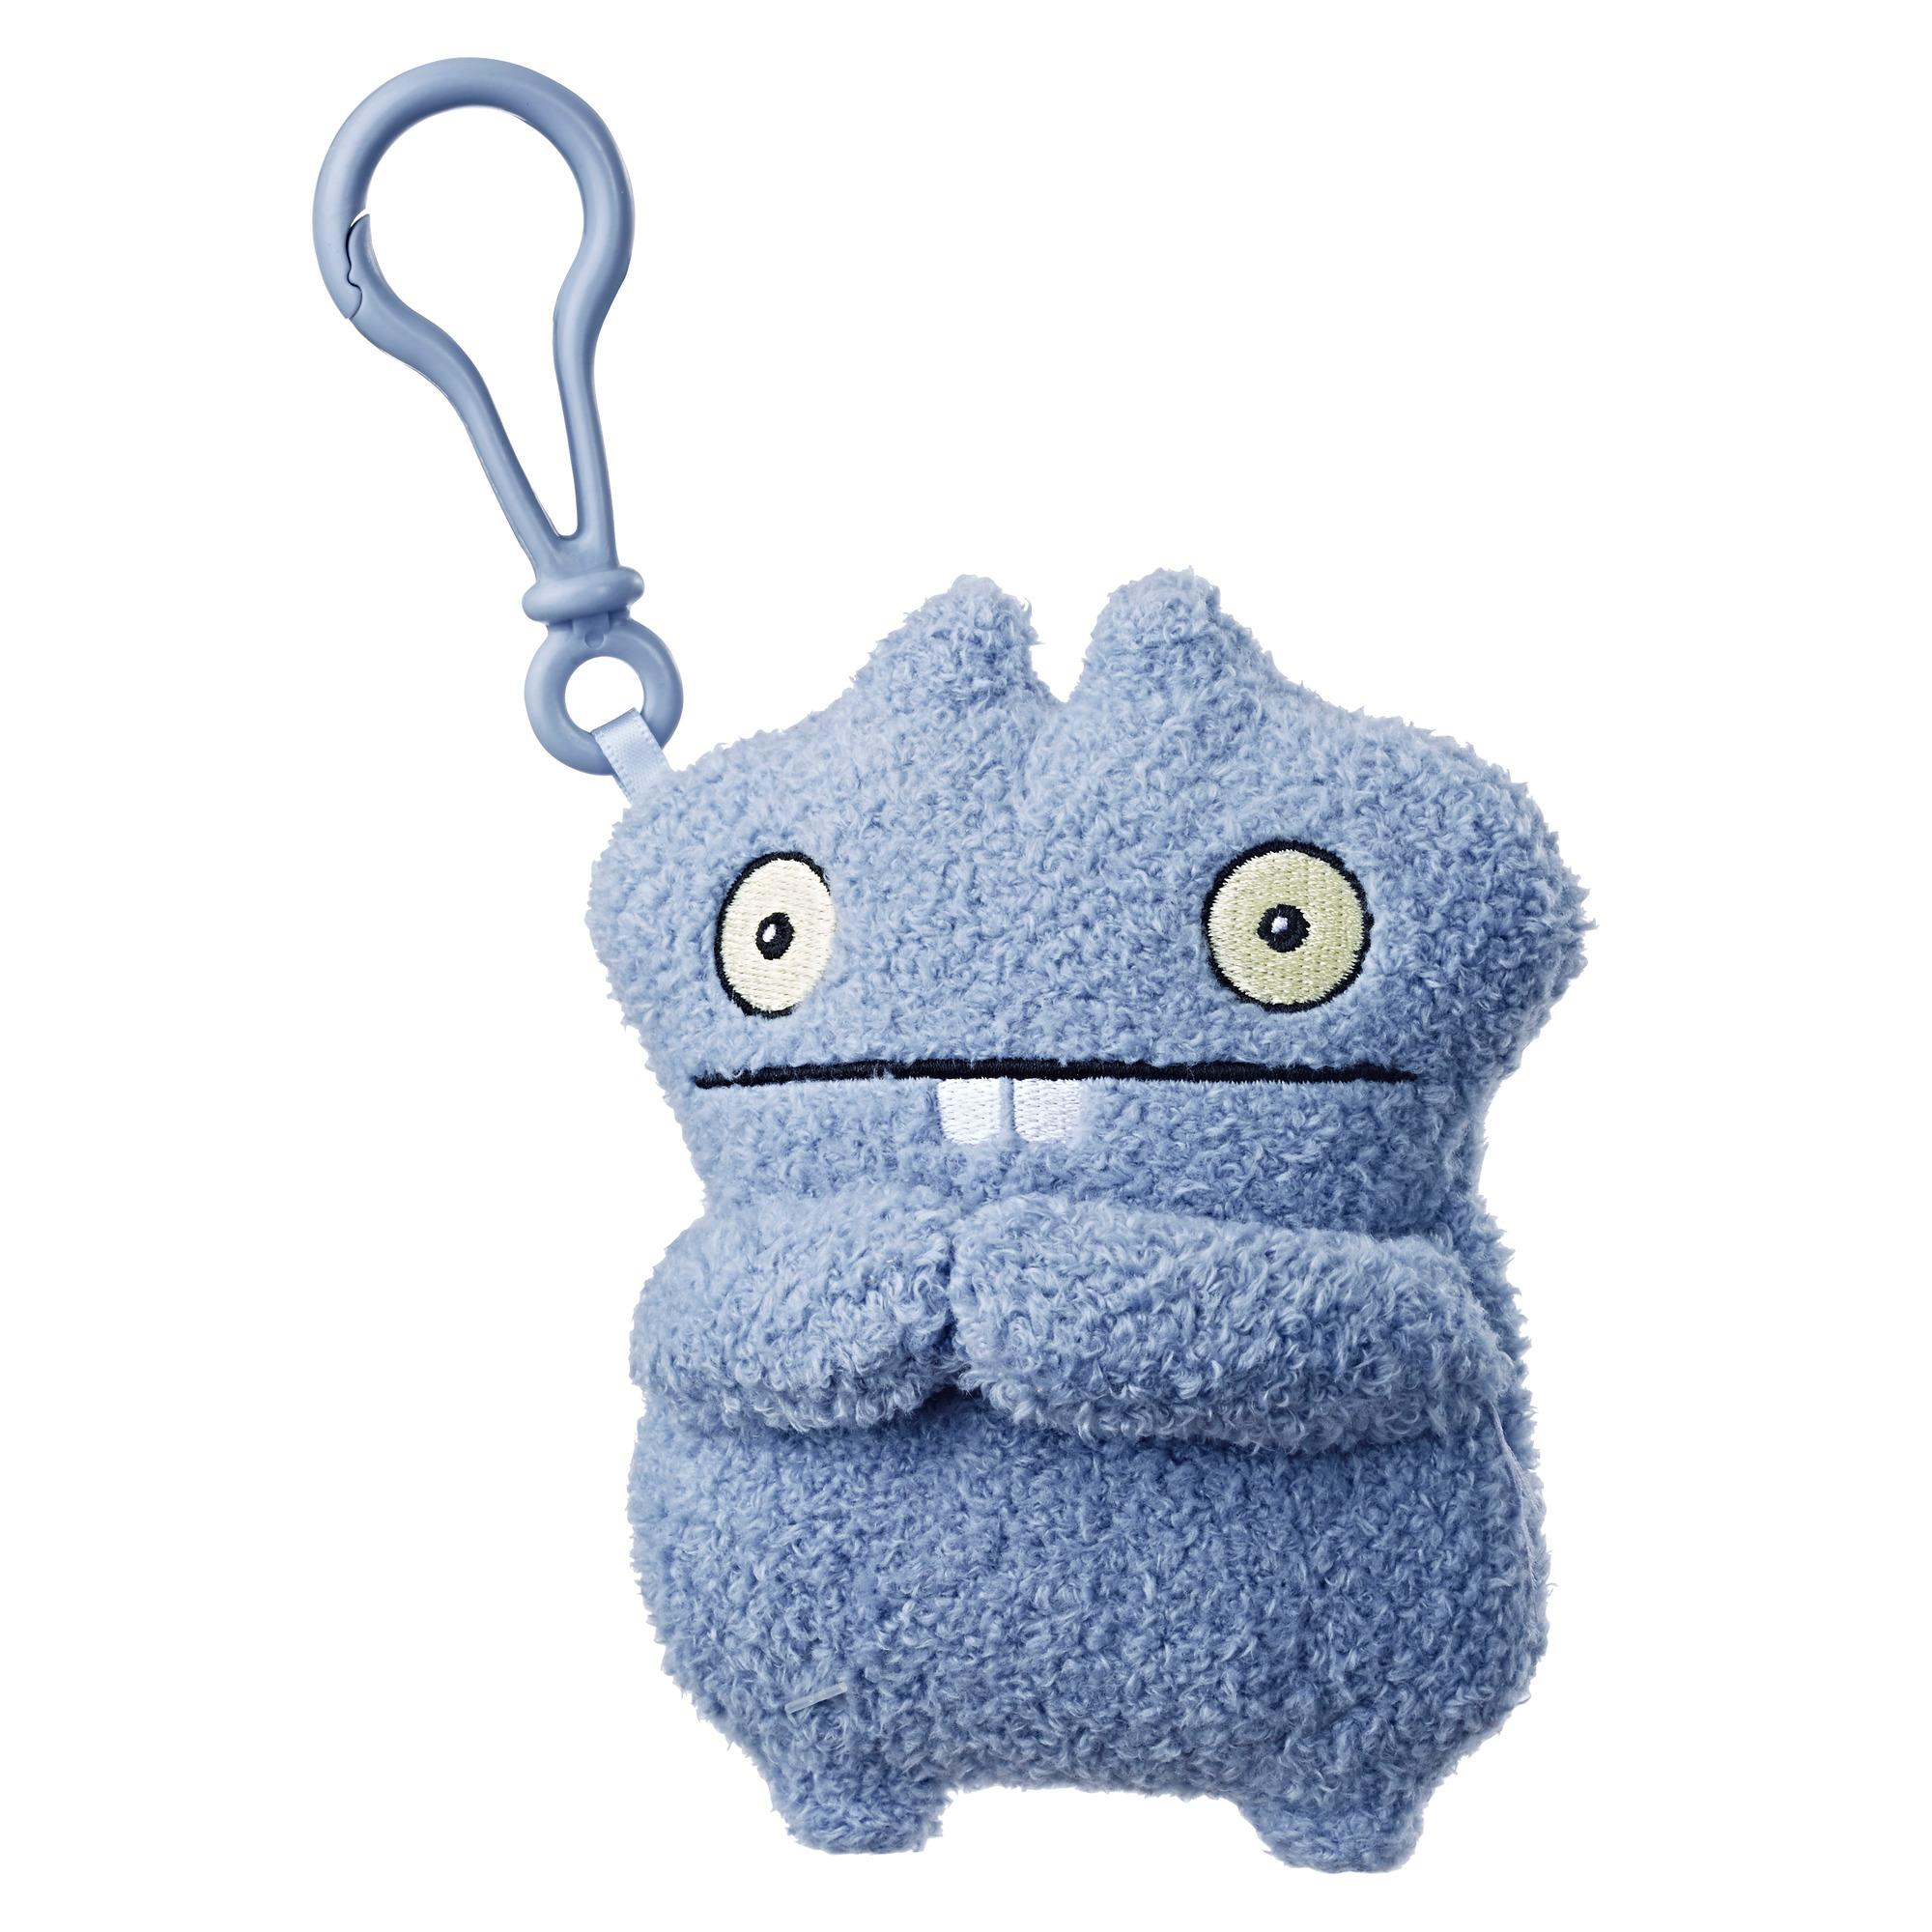 UglyDolls Babo To-Go Stuffed Plush Toy, 5 inches tall